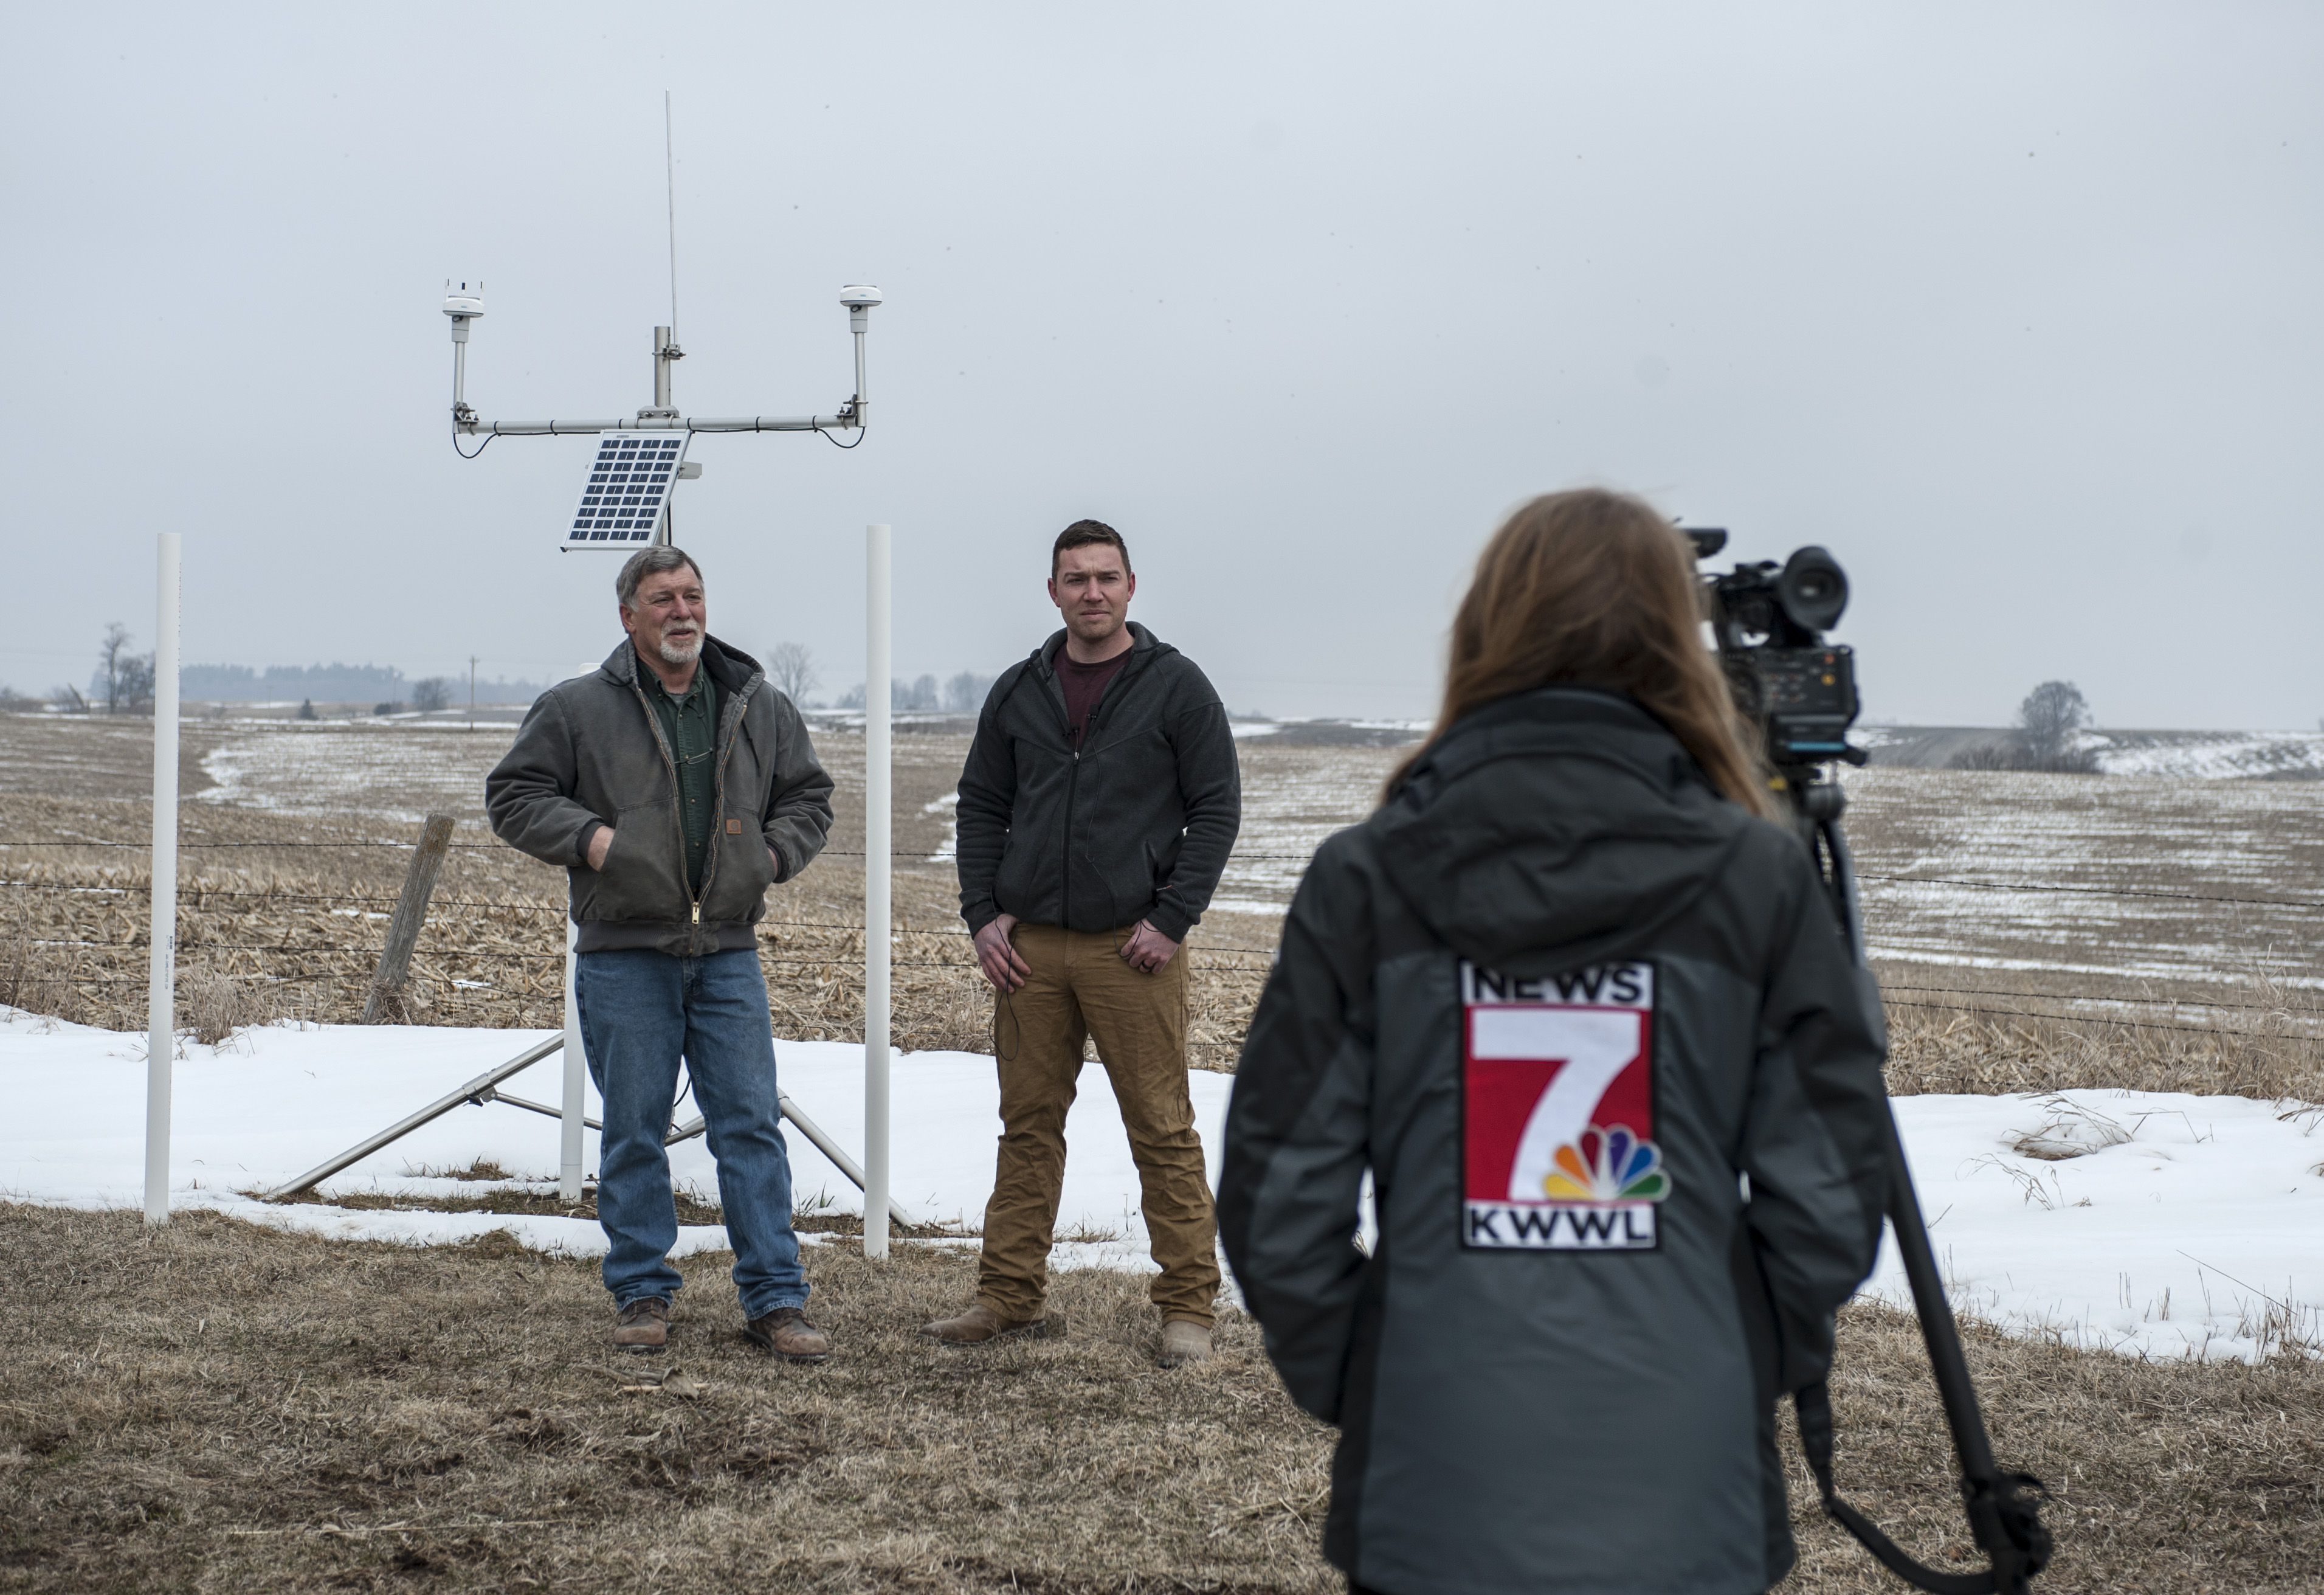 Two farmers stand in front of the tripod with the hydrologic instruments while a camera person from KWWL-TV films them.